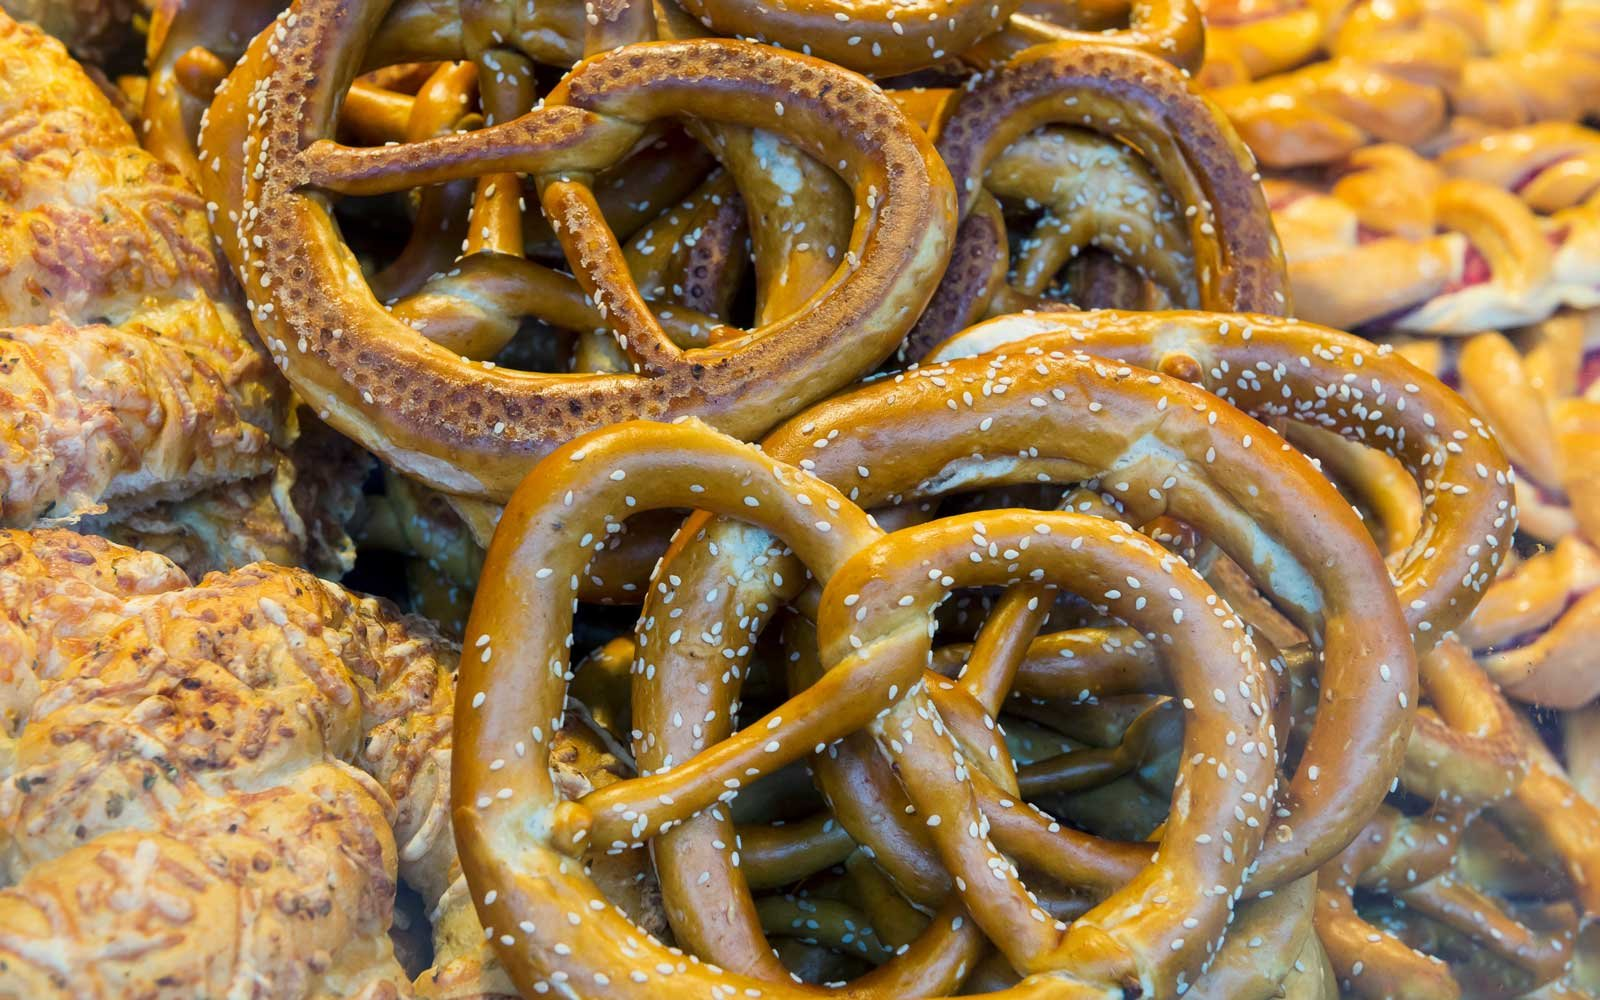 Pretzels have become a popular treat found at Christmas markets across Europe in countries that range from Germany and France to Italy and London.